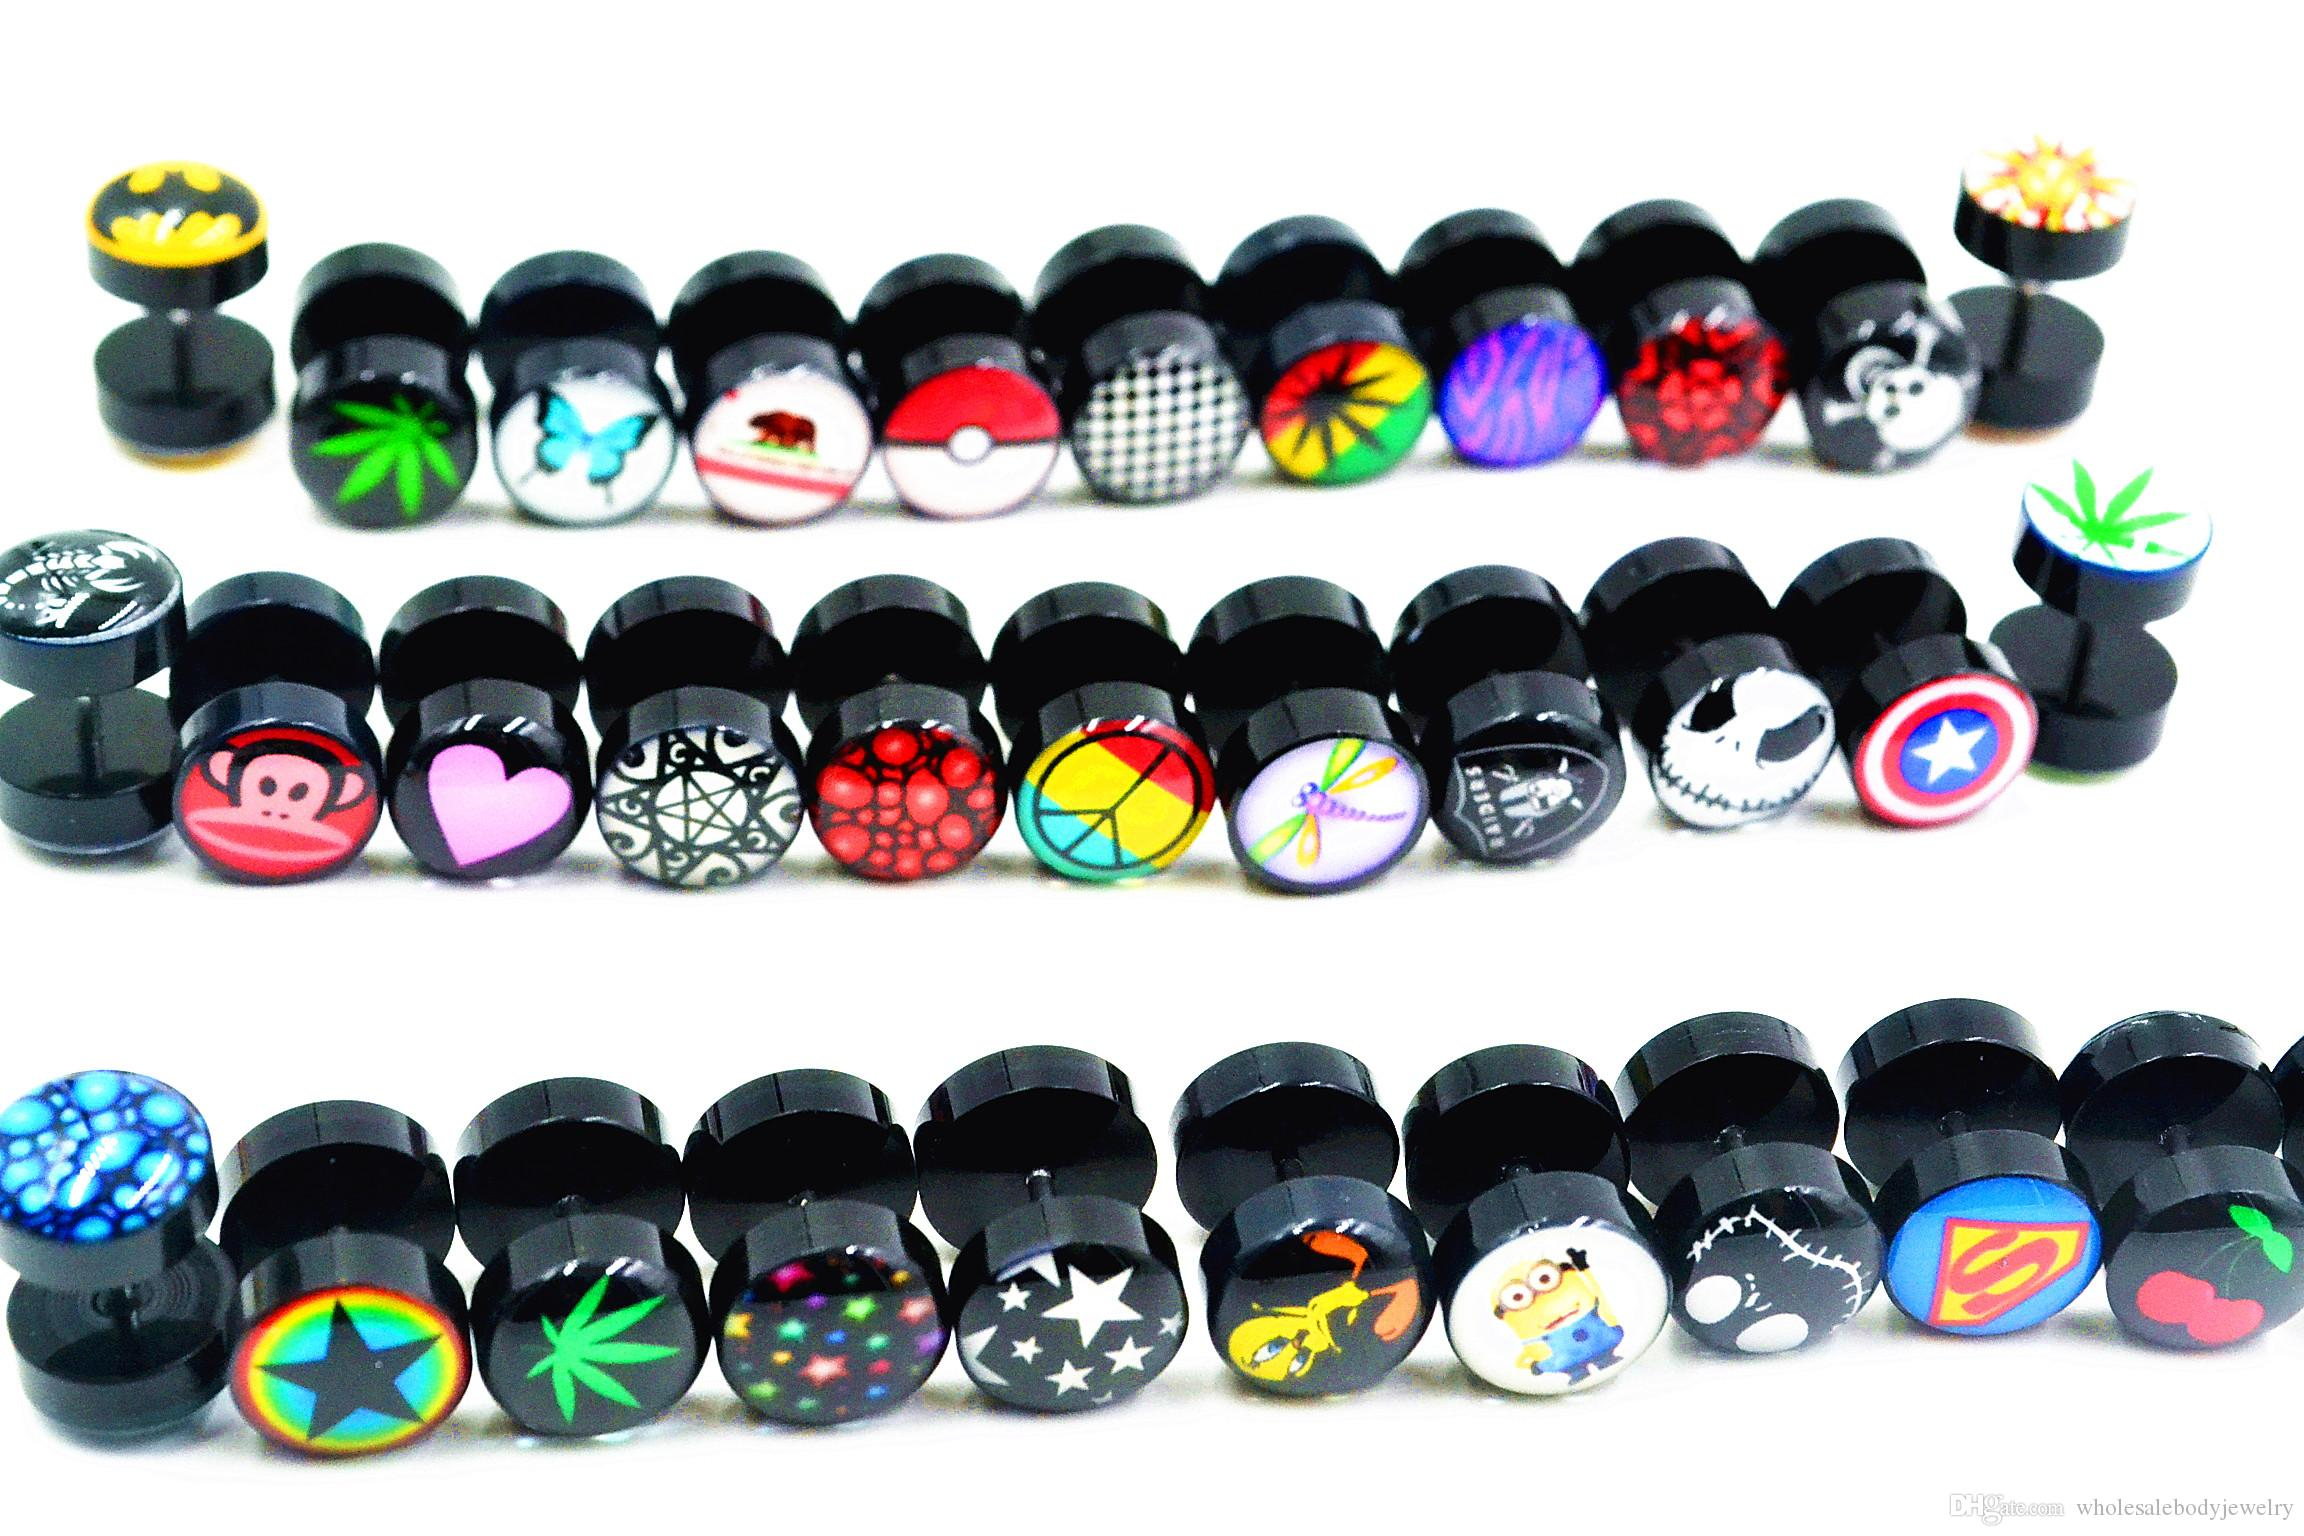 lothot sell new logos body jewelry fake ear plugs illusion ear tapers fake ear plugs cheater. Black Bedroom Furniture Sets. Home Design Ideas